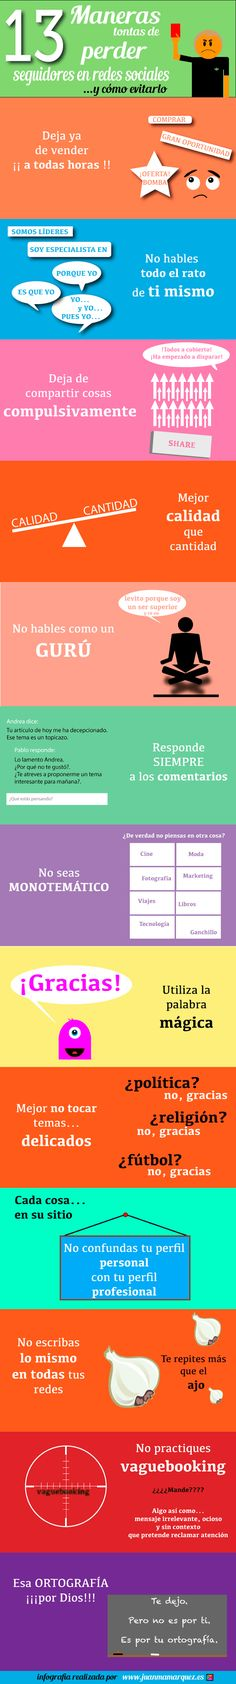 Marketing Online, Social Media, #reputación: 13 maneras tontas de perder #seguidores en las #redes